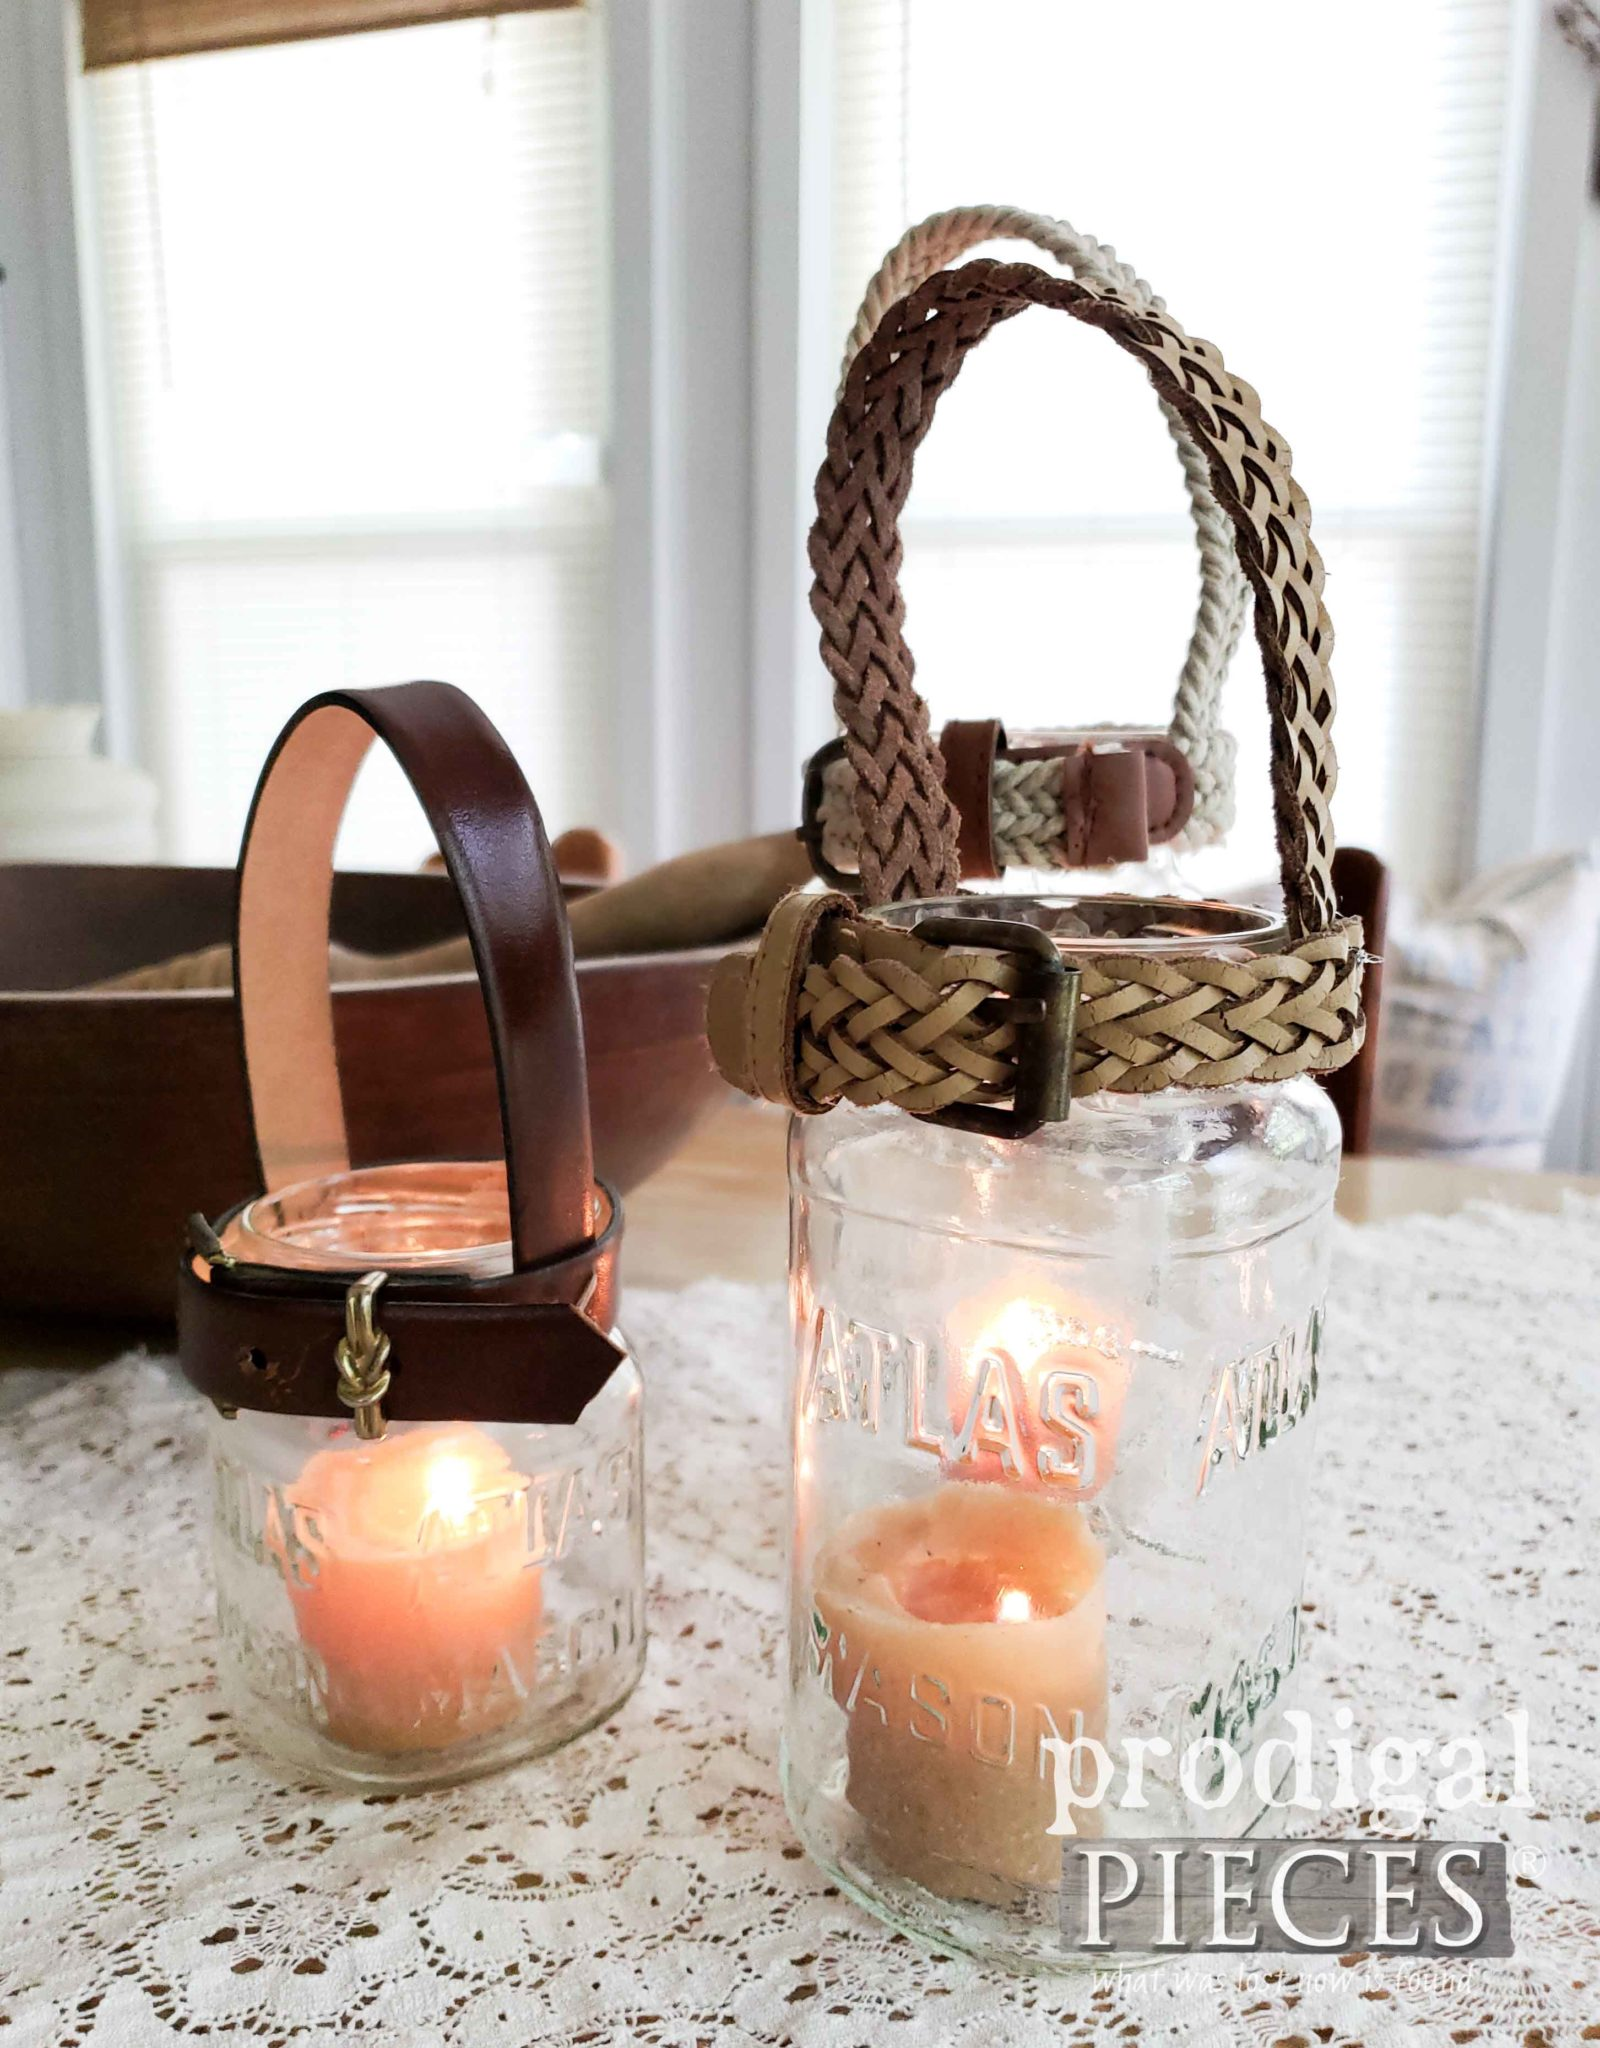 Leather Belt & Rope Canning Jar Candle Holders by Larissa of Prodigal Pieces | prodigalpieces.com #prodigalpieces #farmhouse #homedecor #diy #crafts #home